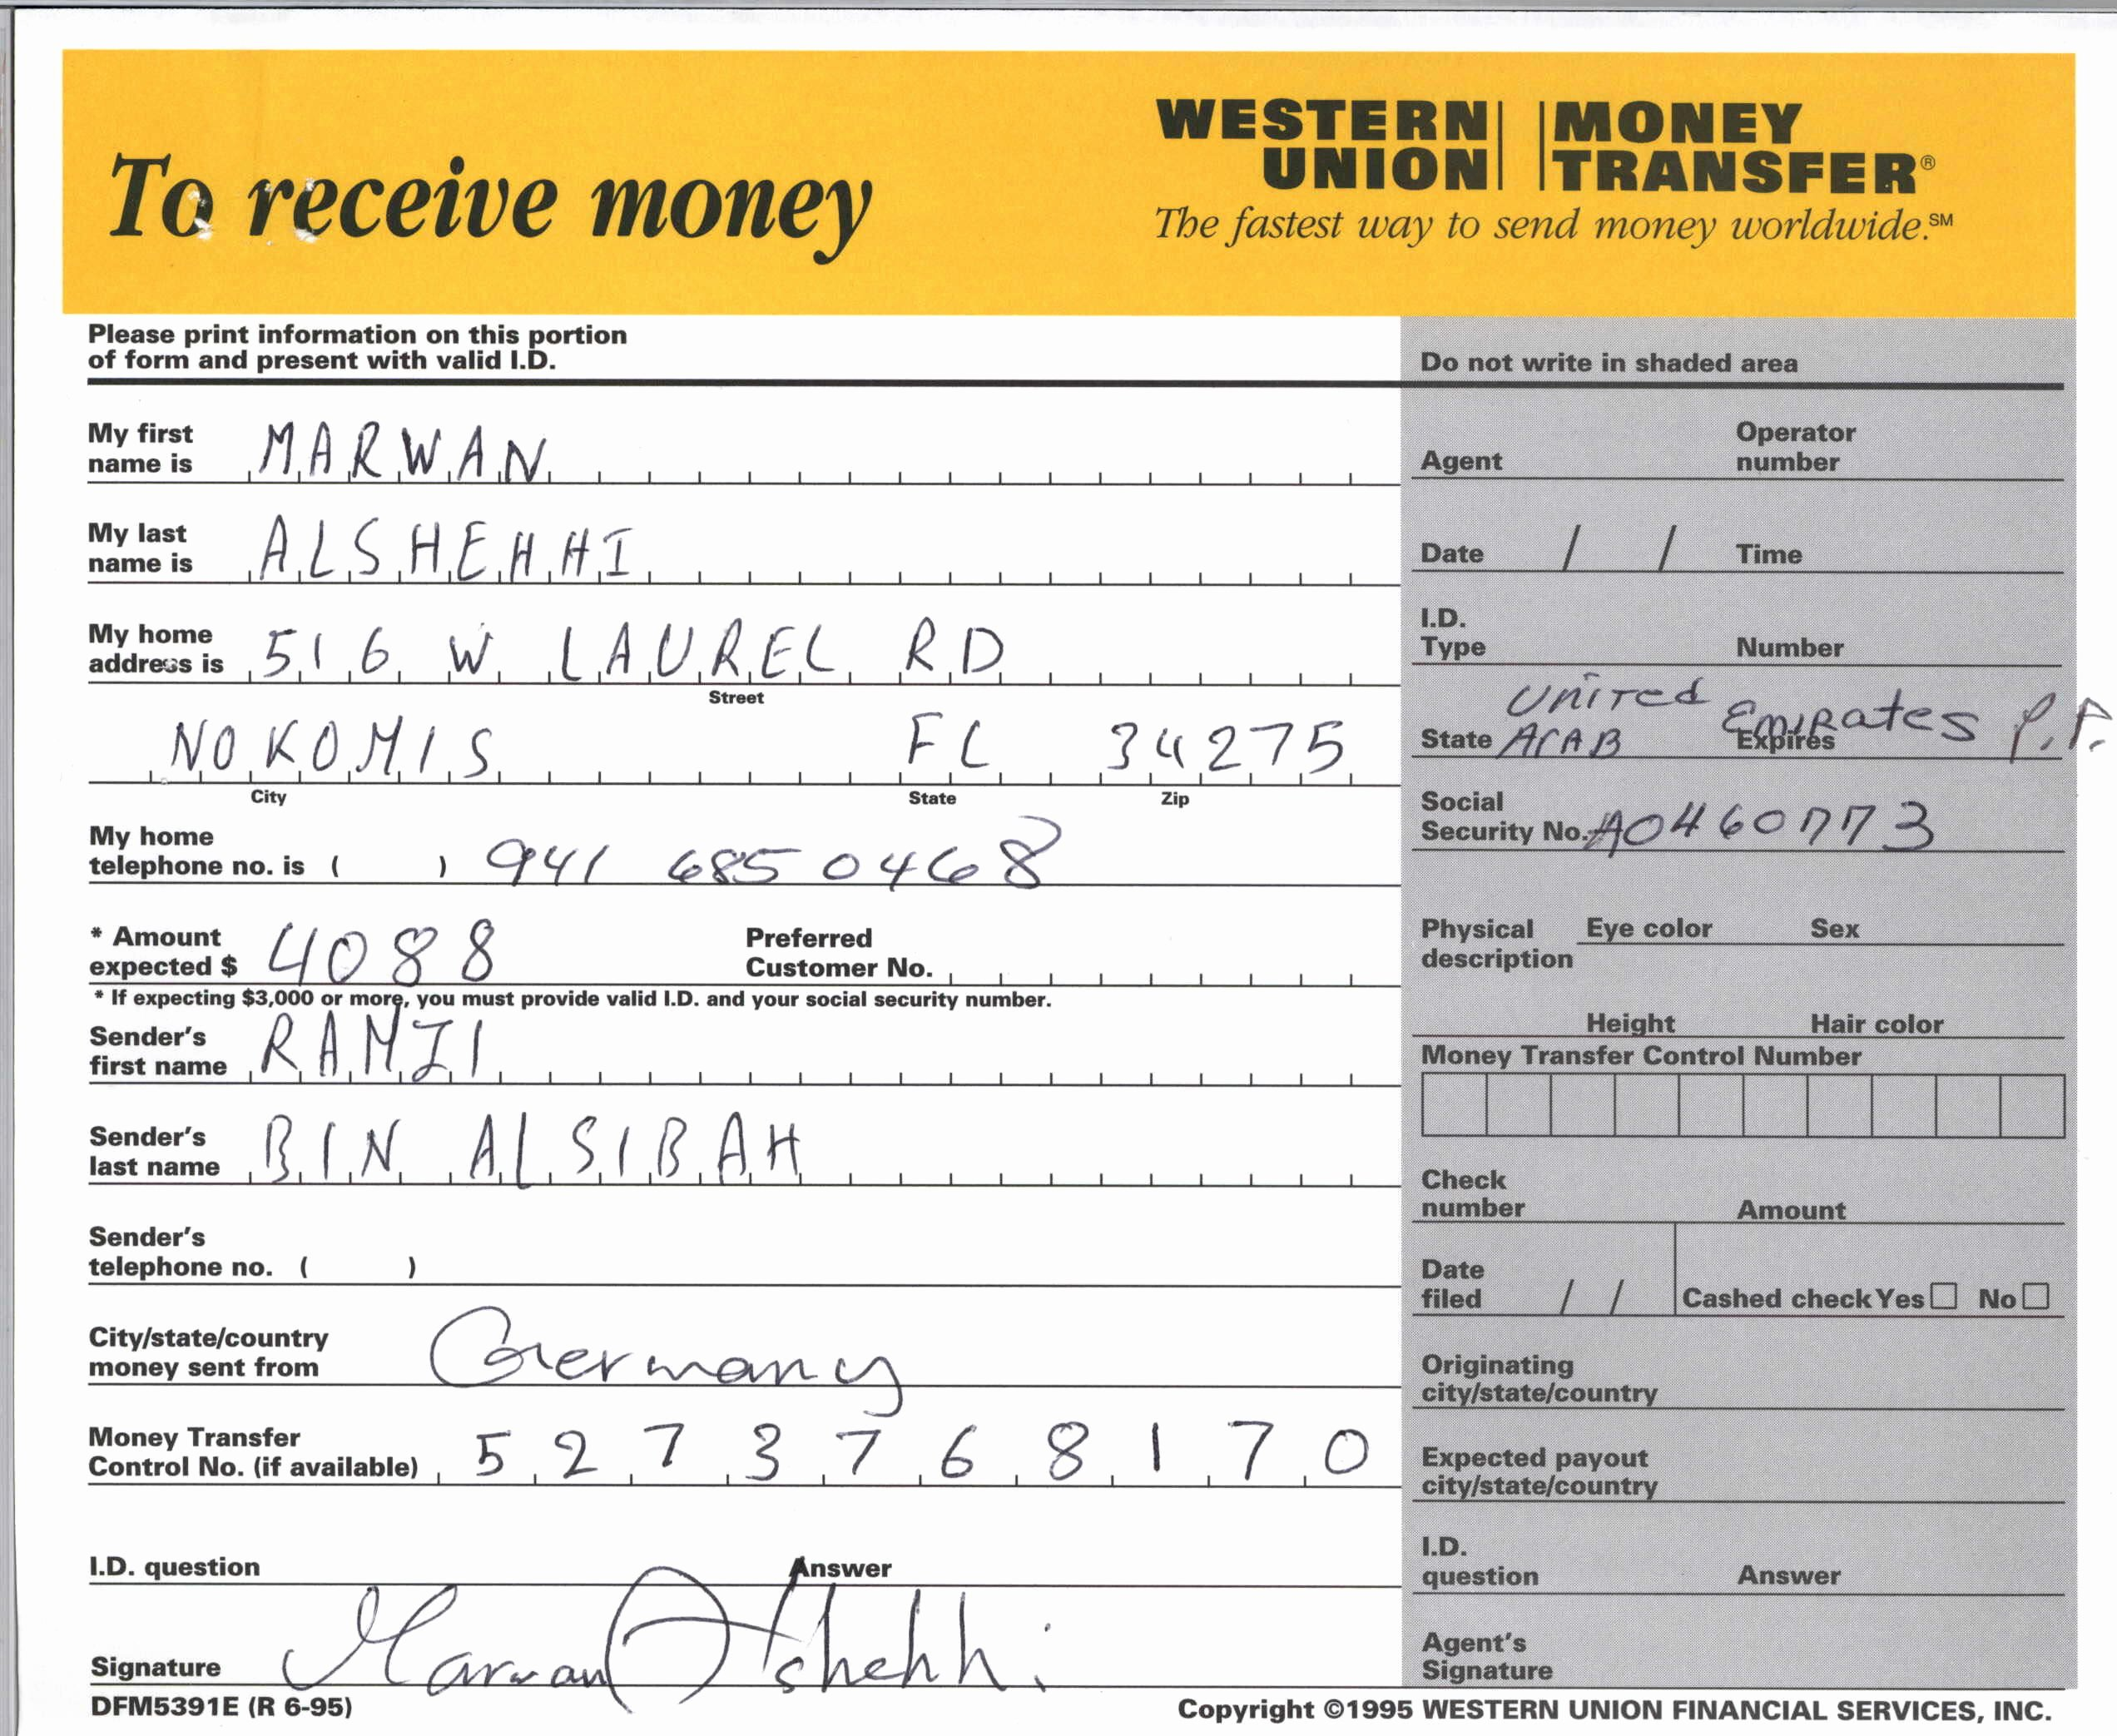 Western Union Receipt Sample Inspirational Searchitfast Web Western Union Money Transfer Receipt